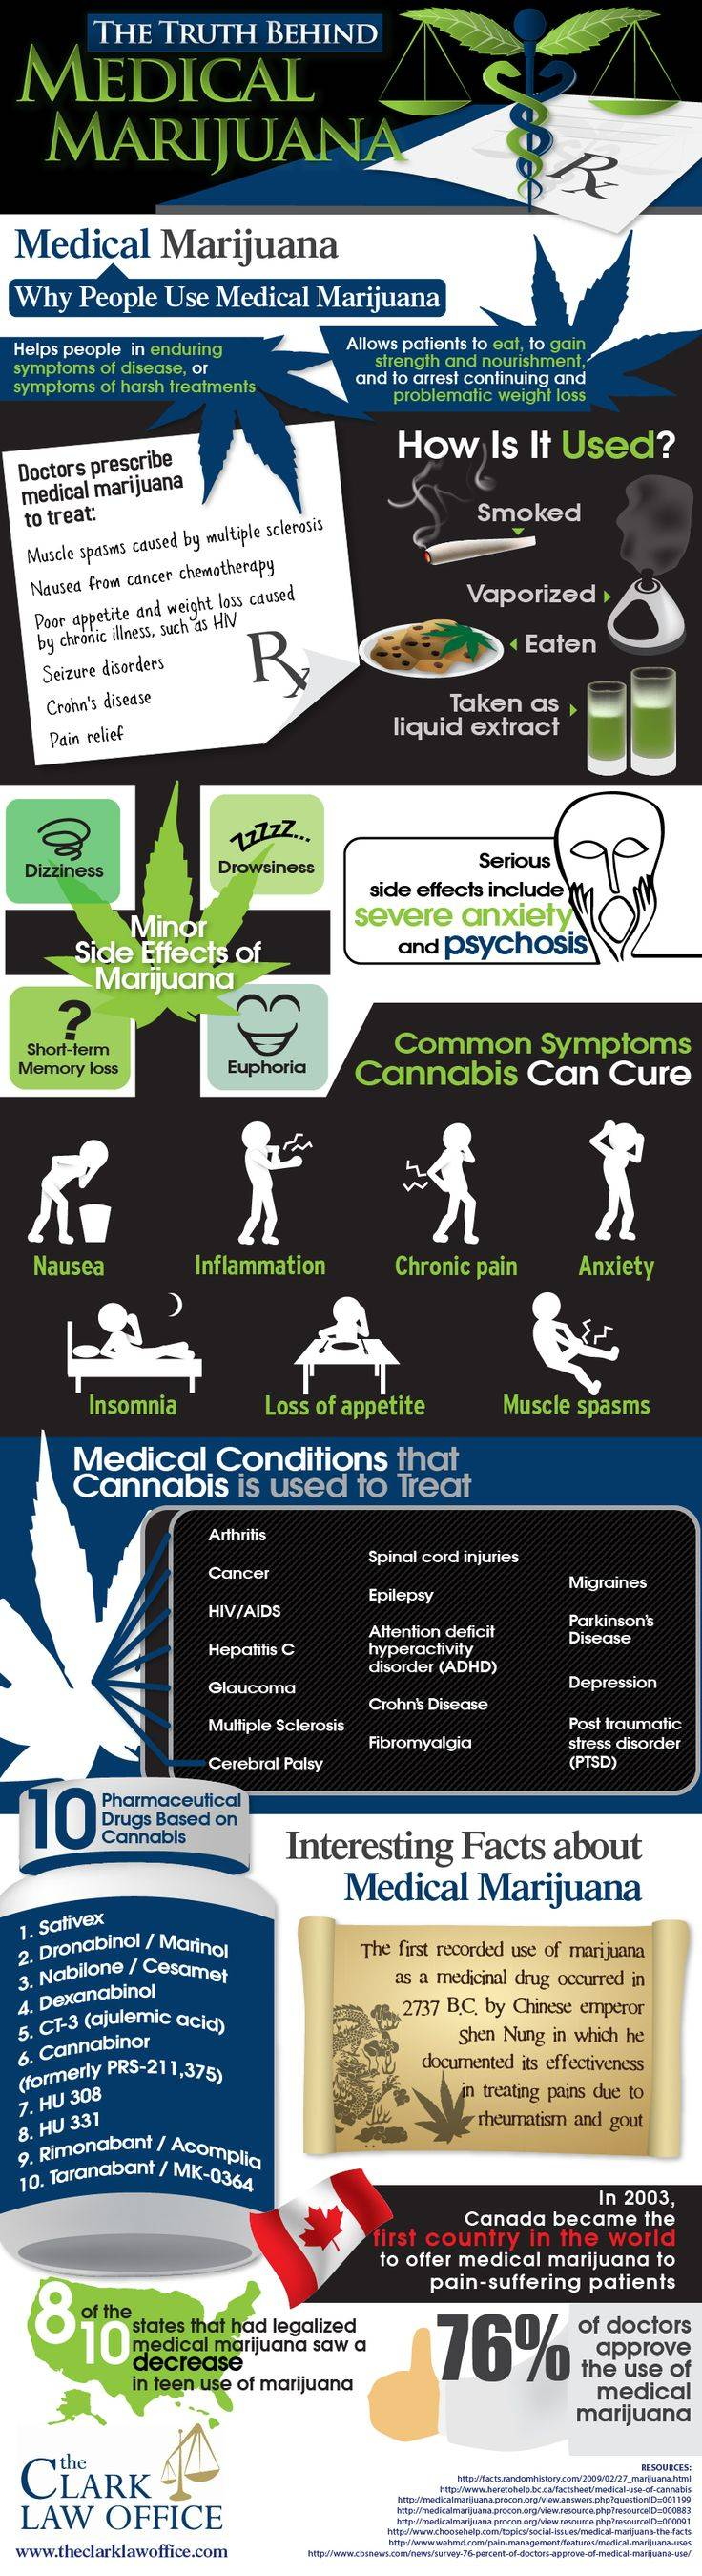 The Truth Behind Medical Marijuana